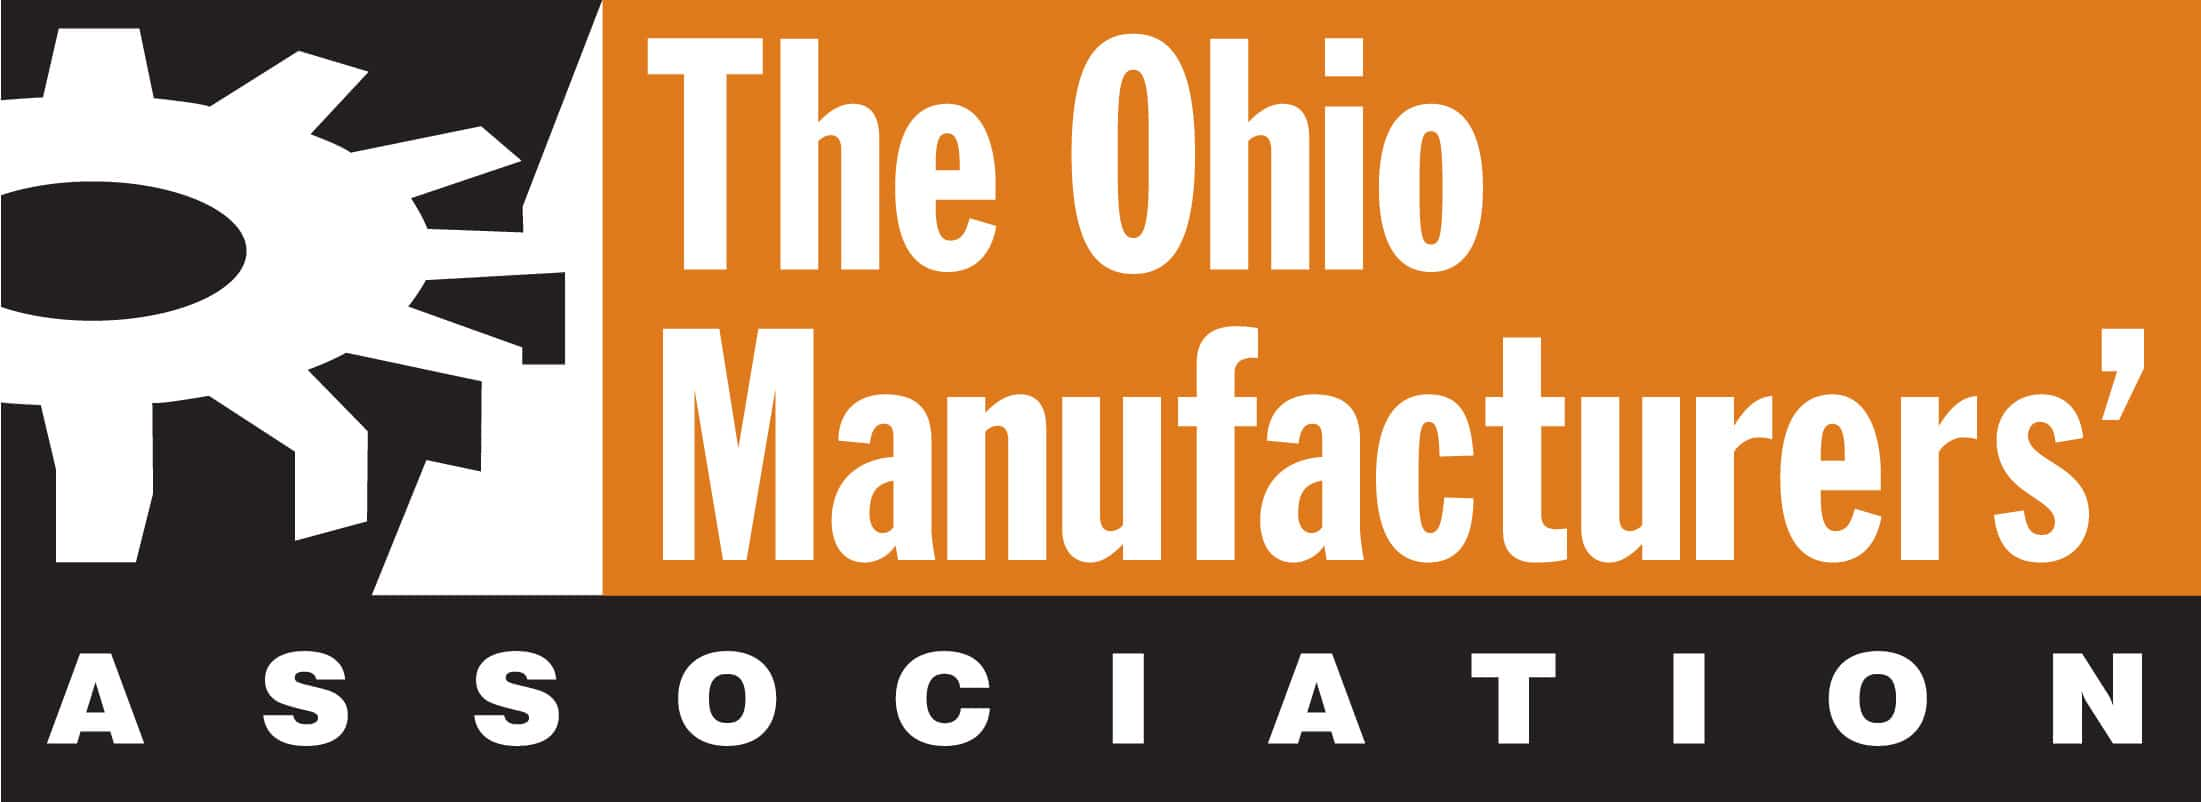 Ohio Manufacturers Assocation